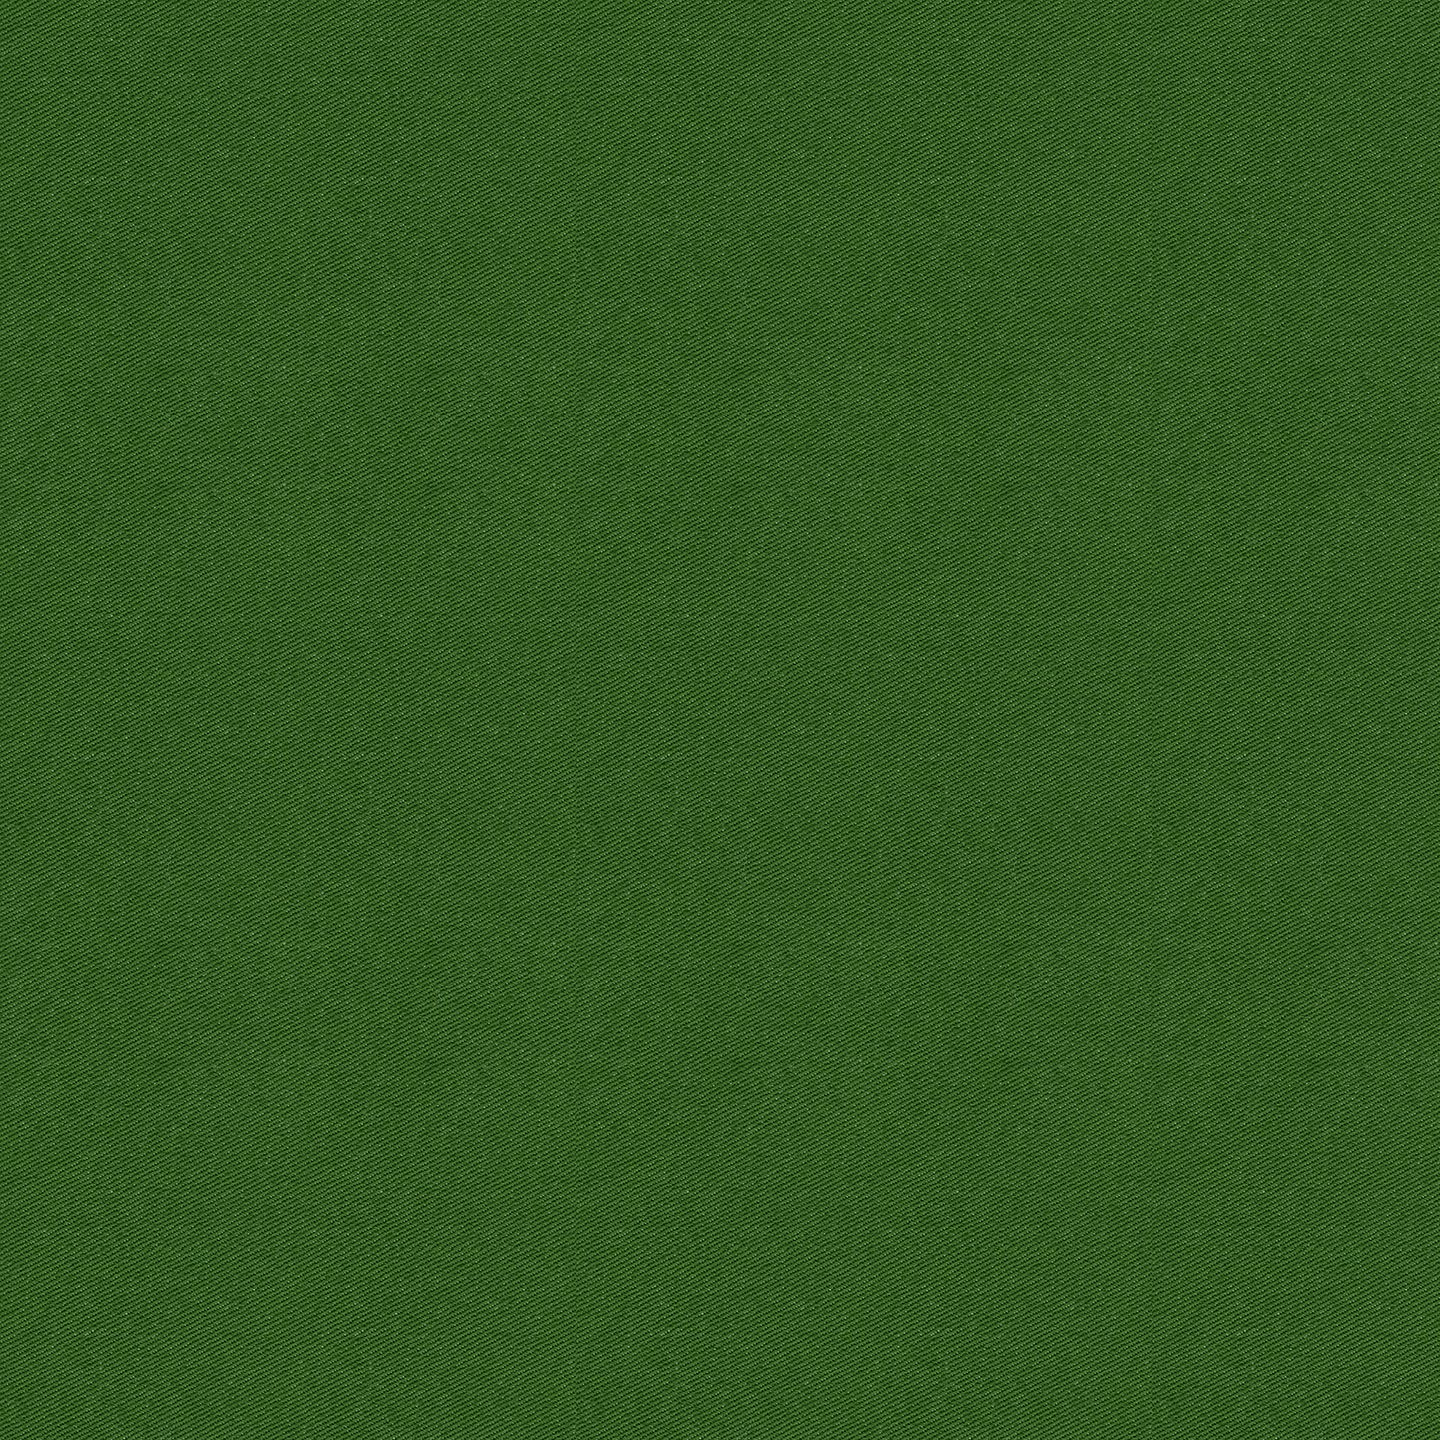 Logan Green Color Swatch Ethan Allen